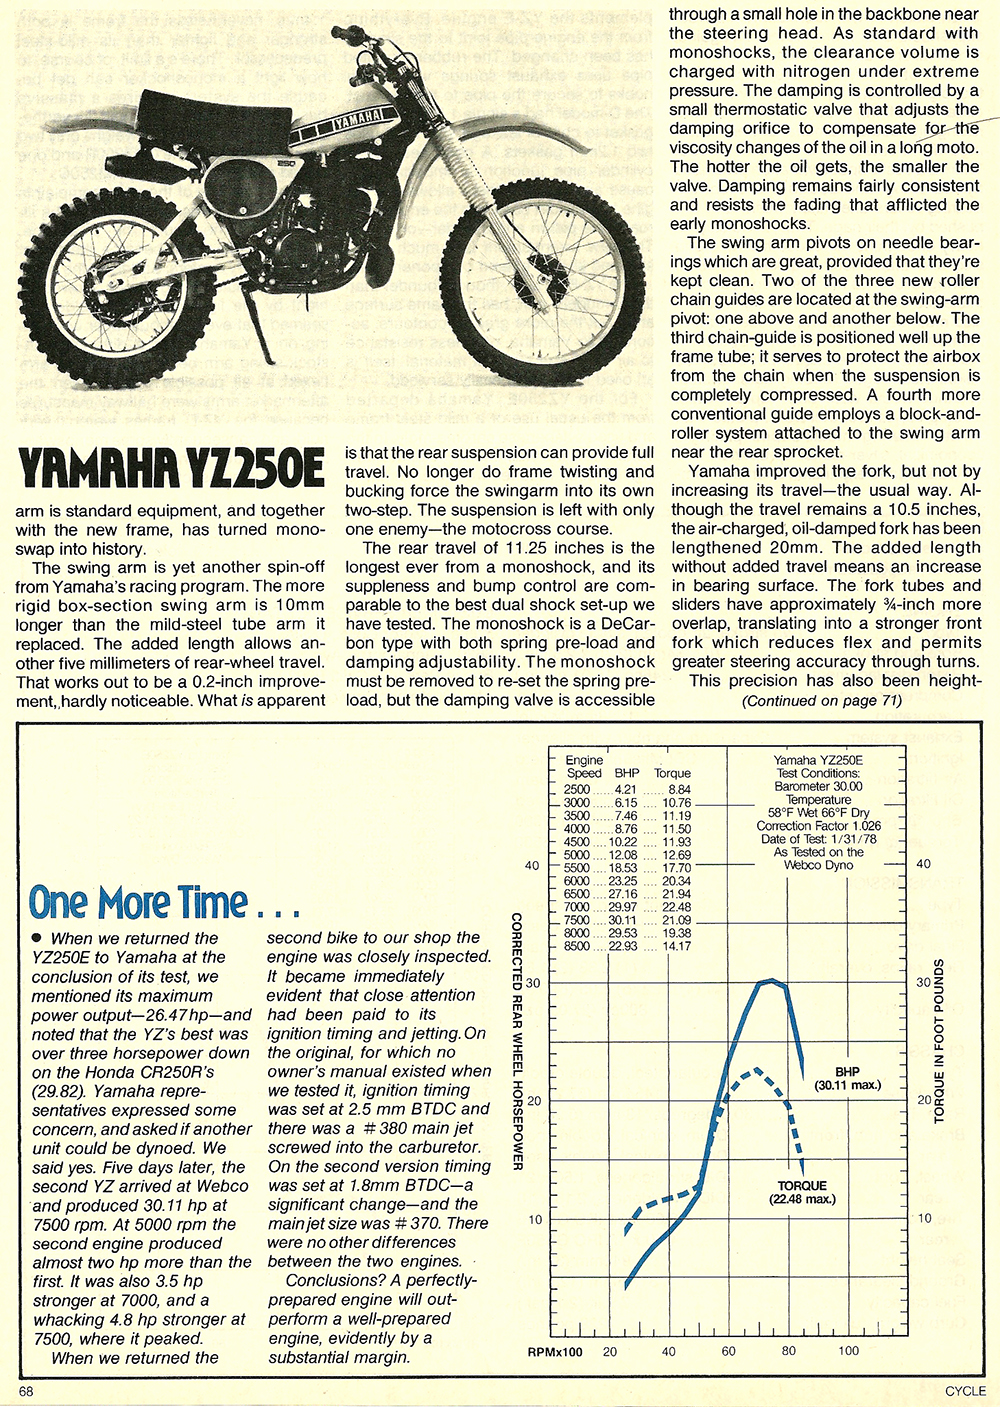 1978 Yamaha YZ250E road test 7.jpg